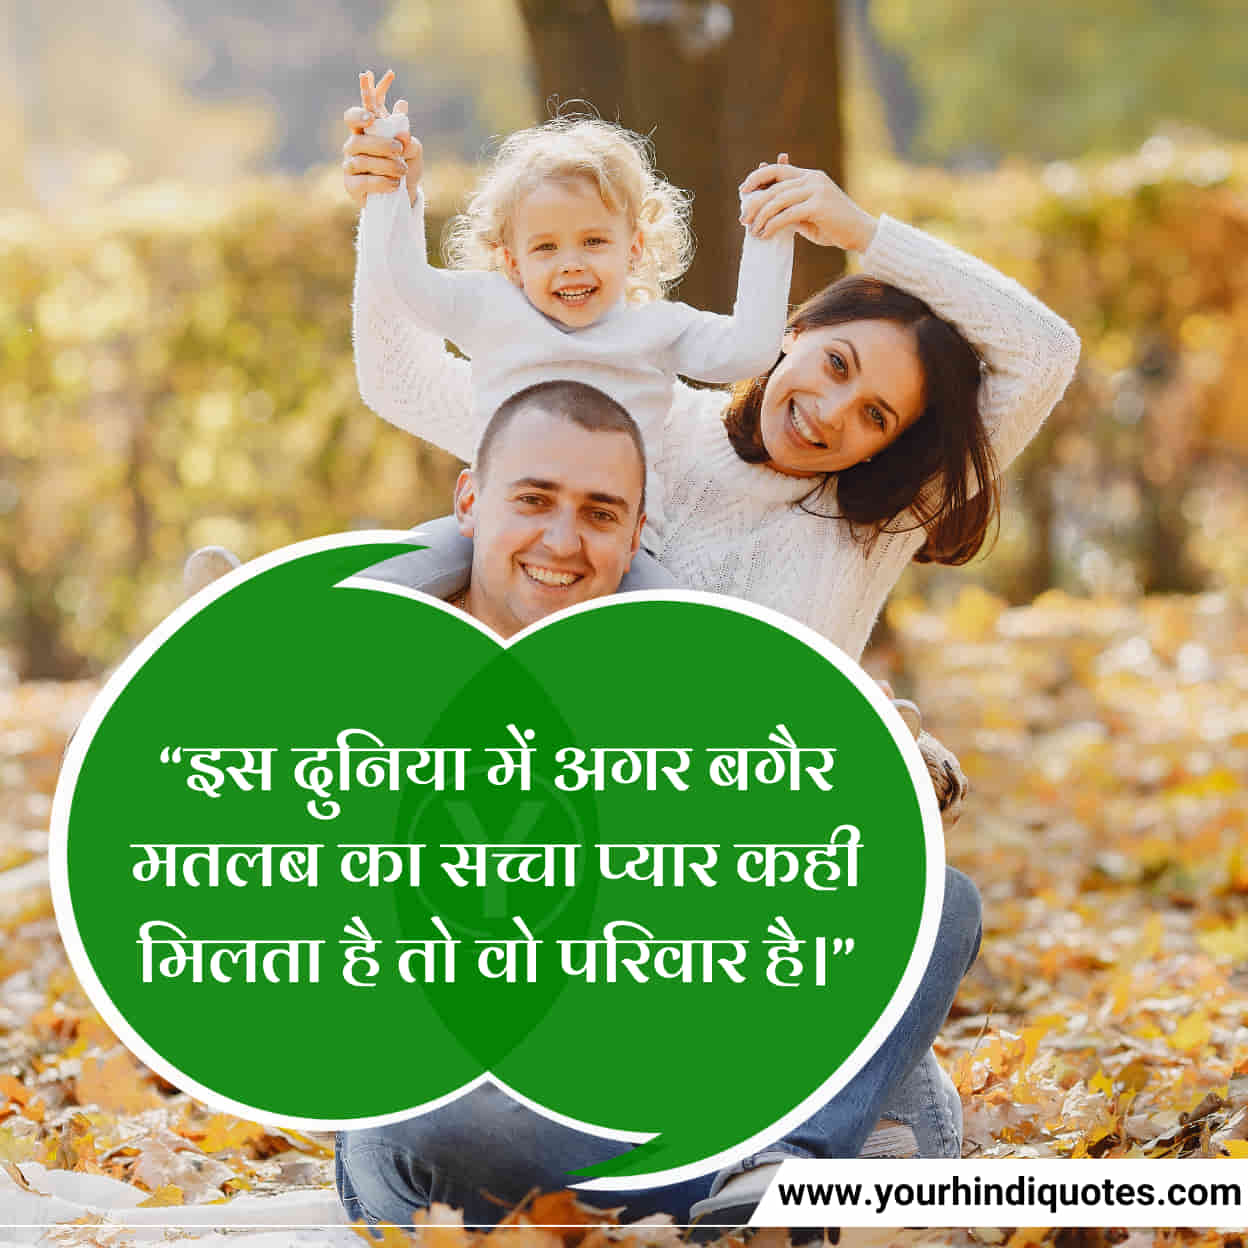 Quotes For Family In Hindi